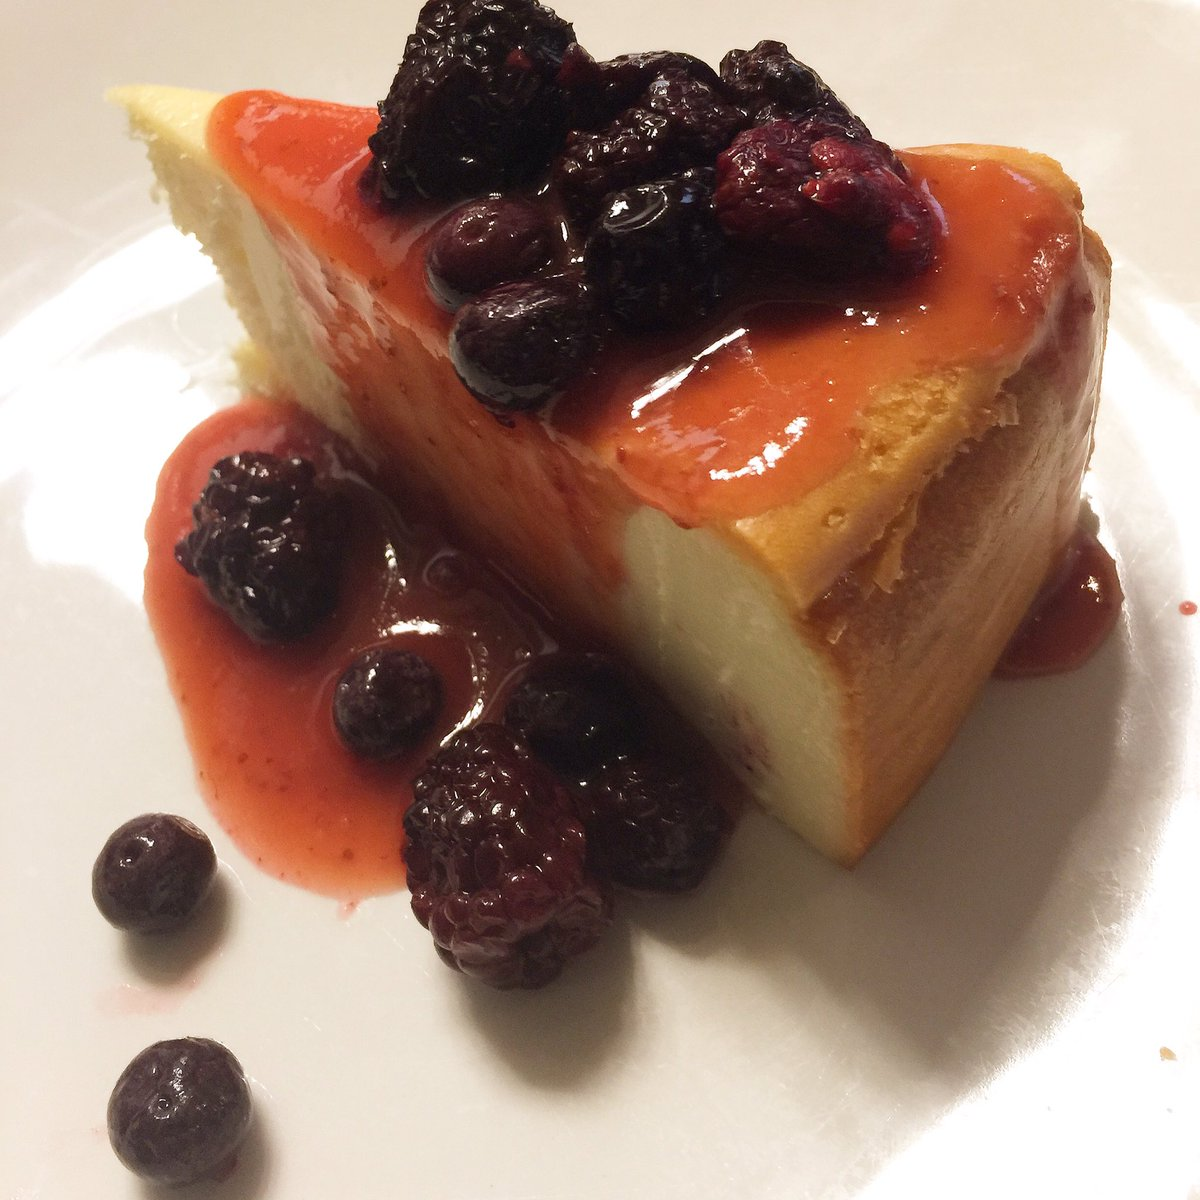 I love cheesecake!!! Yummy! Delicious and awesome! #cake #food #recipe #yummy #delicious #like4like #likeforfollow #instafood #instadaily<br>http://pic.twitter.com/aKhGMVG9EZ